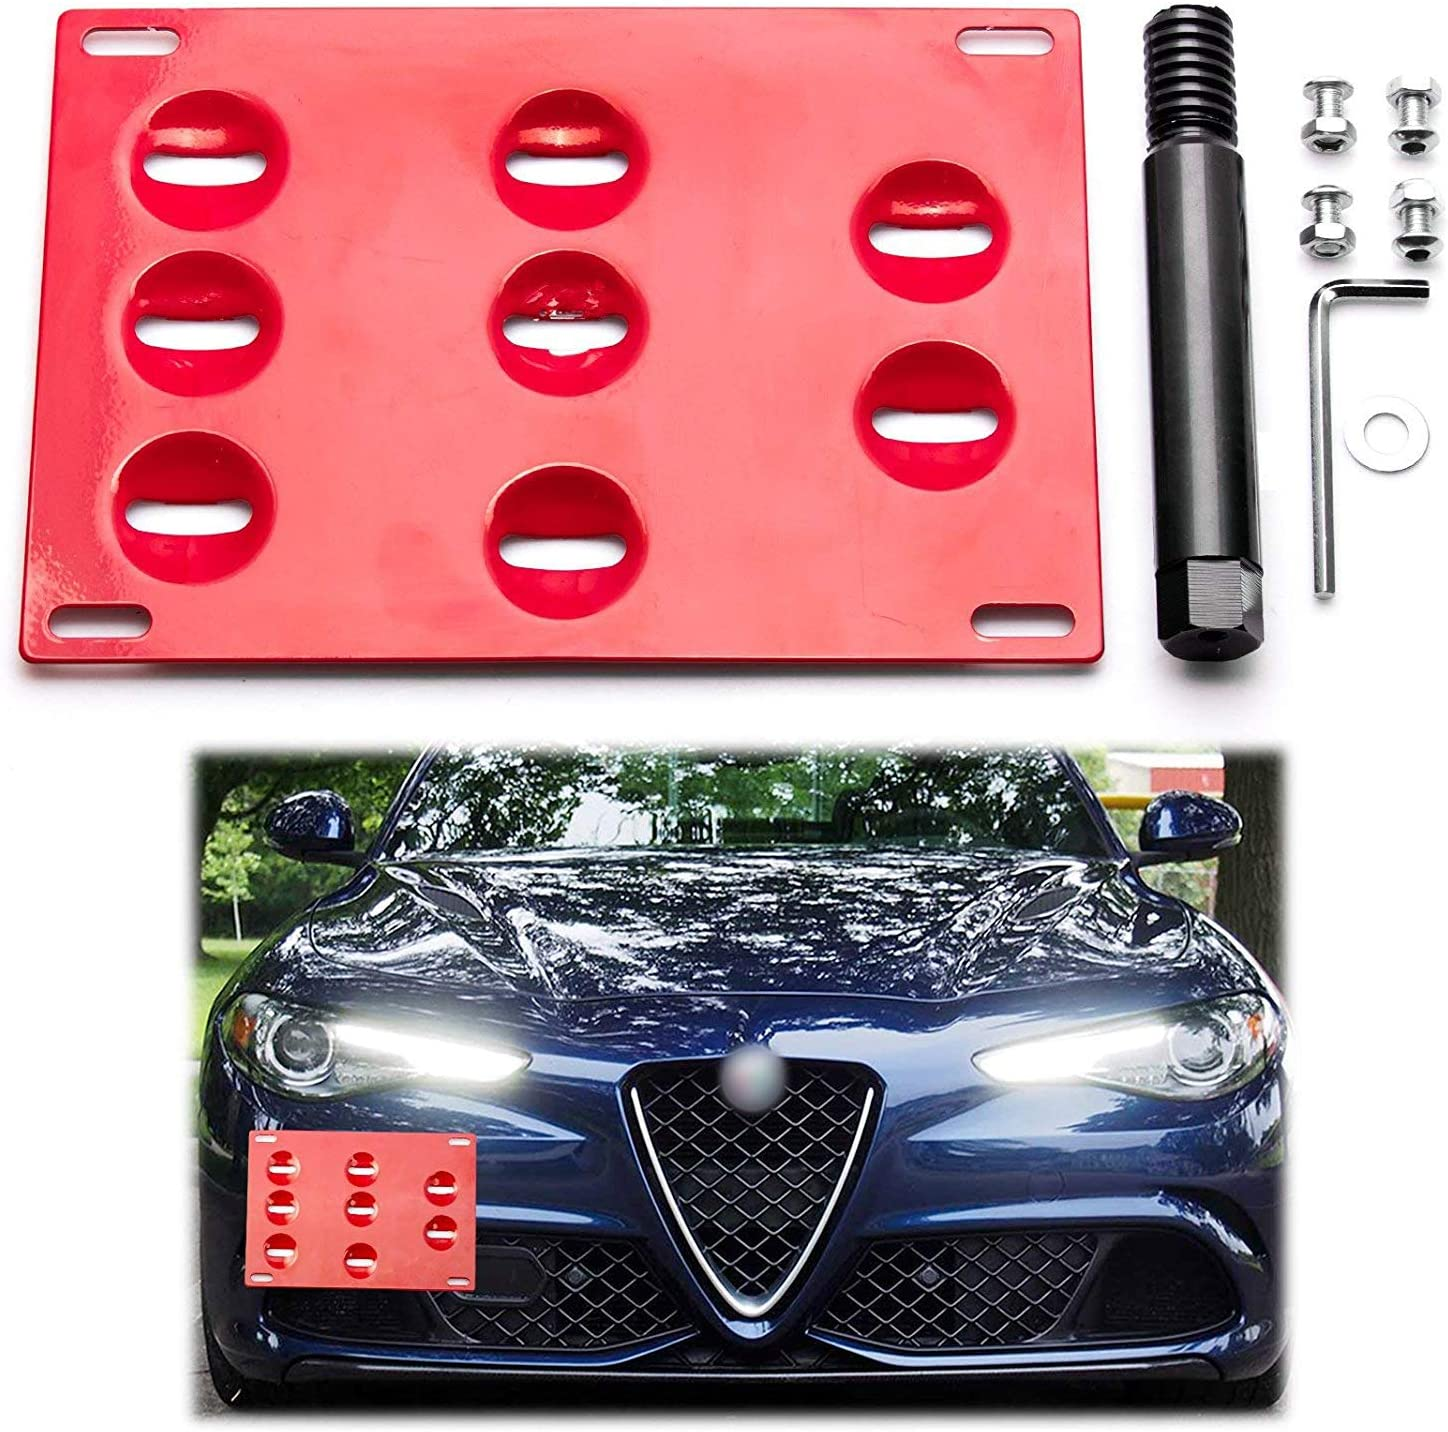 Xotic Tech Red Front Bumper Tow License Plate Mount Bracket Relocator Kit for Alfa Romeo Giulia 2017-up - No Drill